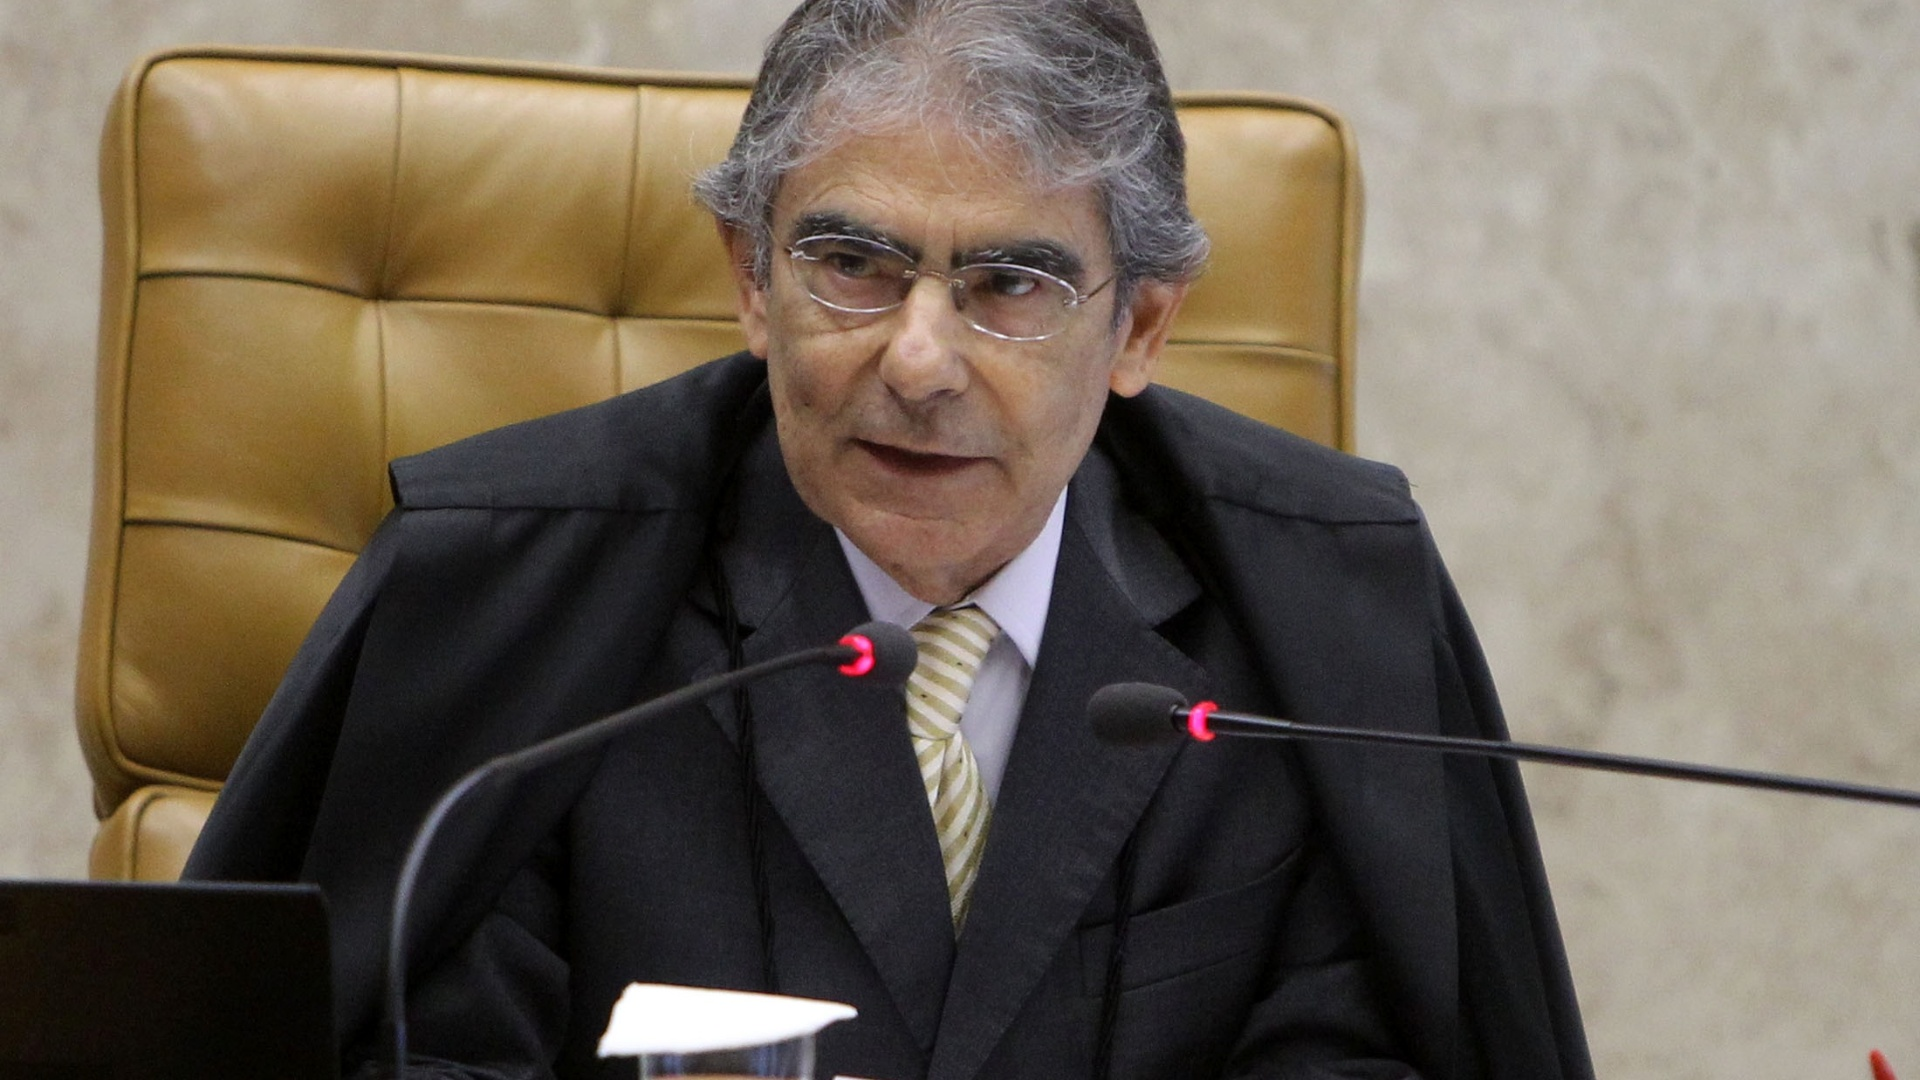 12.nov.2012 - O presidente do Supremo Tribunal Federal, o ministro Ayres Britto, participa de sesso do julgamento do mensalo, em Braslia. Aps um retrospecto das votaes da ltima sesso, na quinta-feira (8), Britto diz que faltam votar quanto  r Simone Vasconcellos, pelo crime de lavagem de dinheiro, os ministros Dias Tffoli, Crmen Lcia e Marco Aurlio